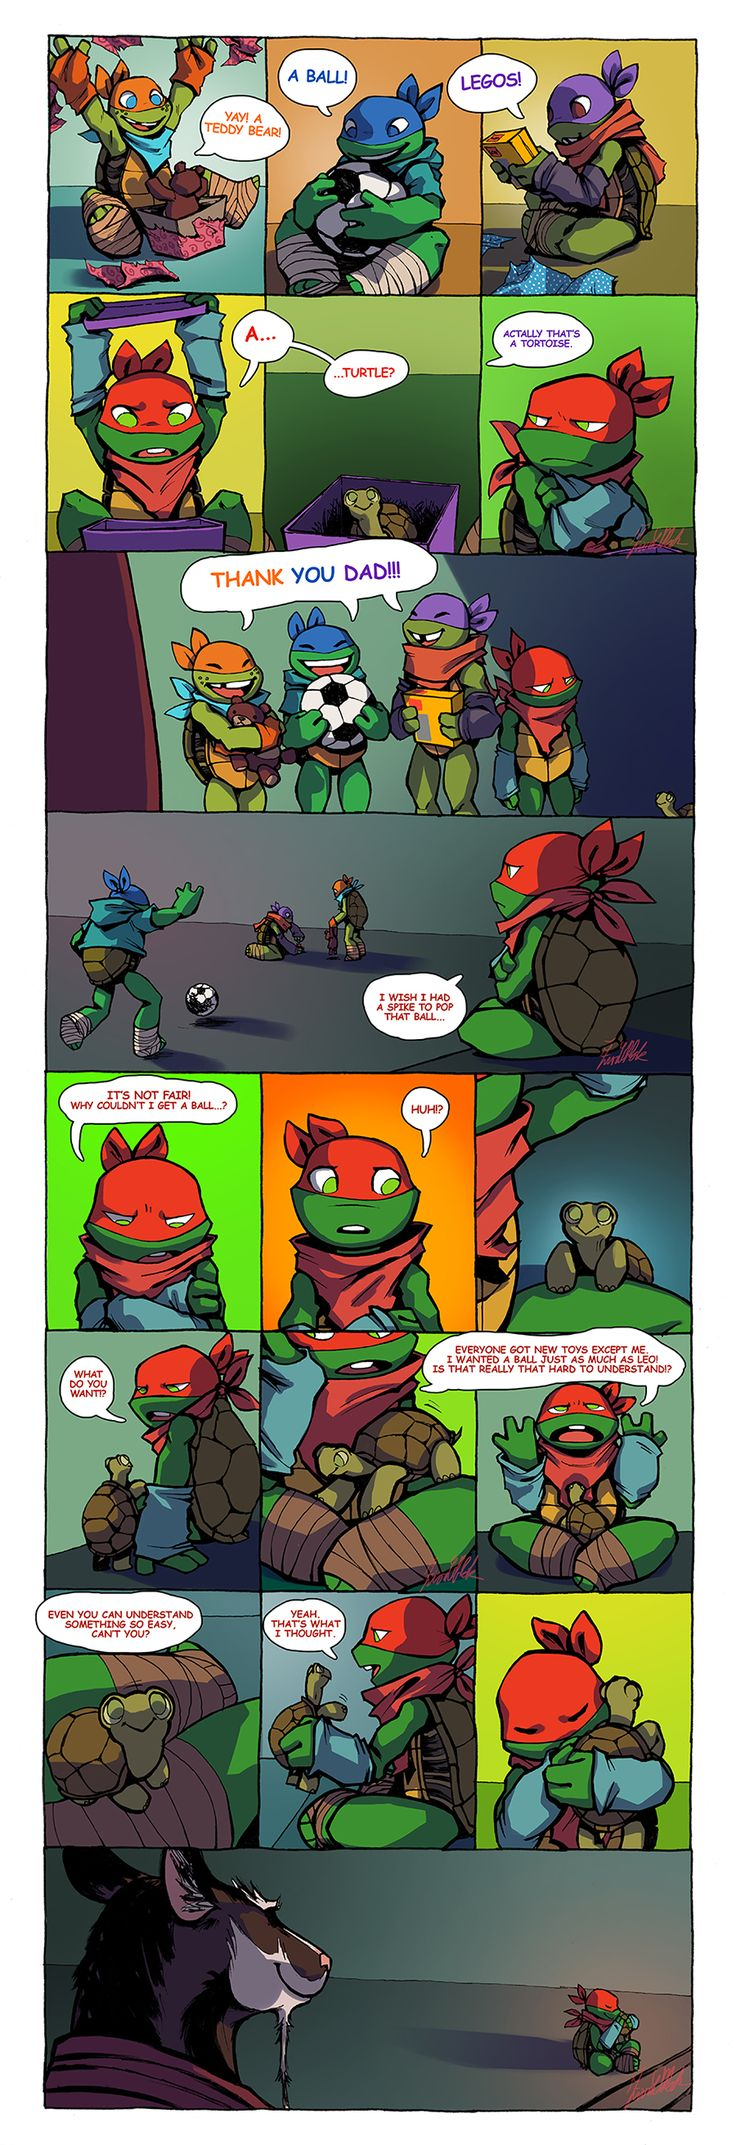 Warning turtles amp tortoises inc - I Can T Believe I Did A Comic Ahaha I Didn T Sleep All Night So I Could Finish This _ Always Wanted To Draw Turtle Tots Ahh It Was Worth It Happy Mutation